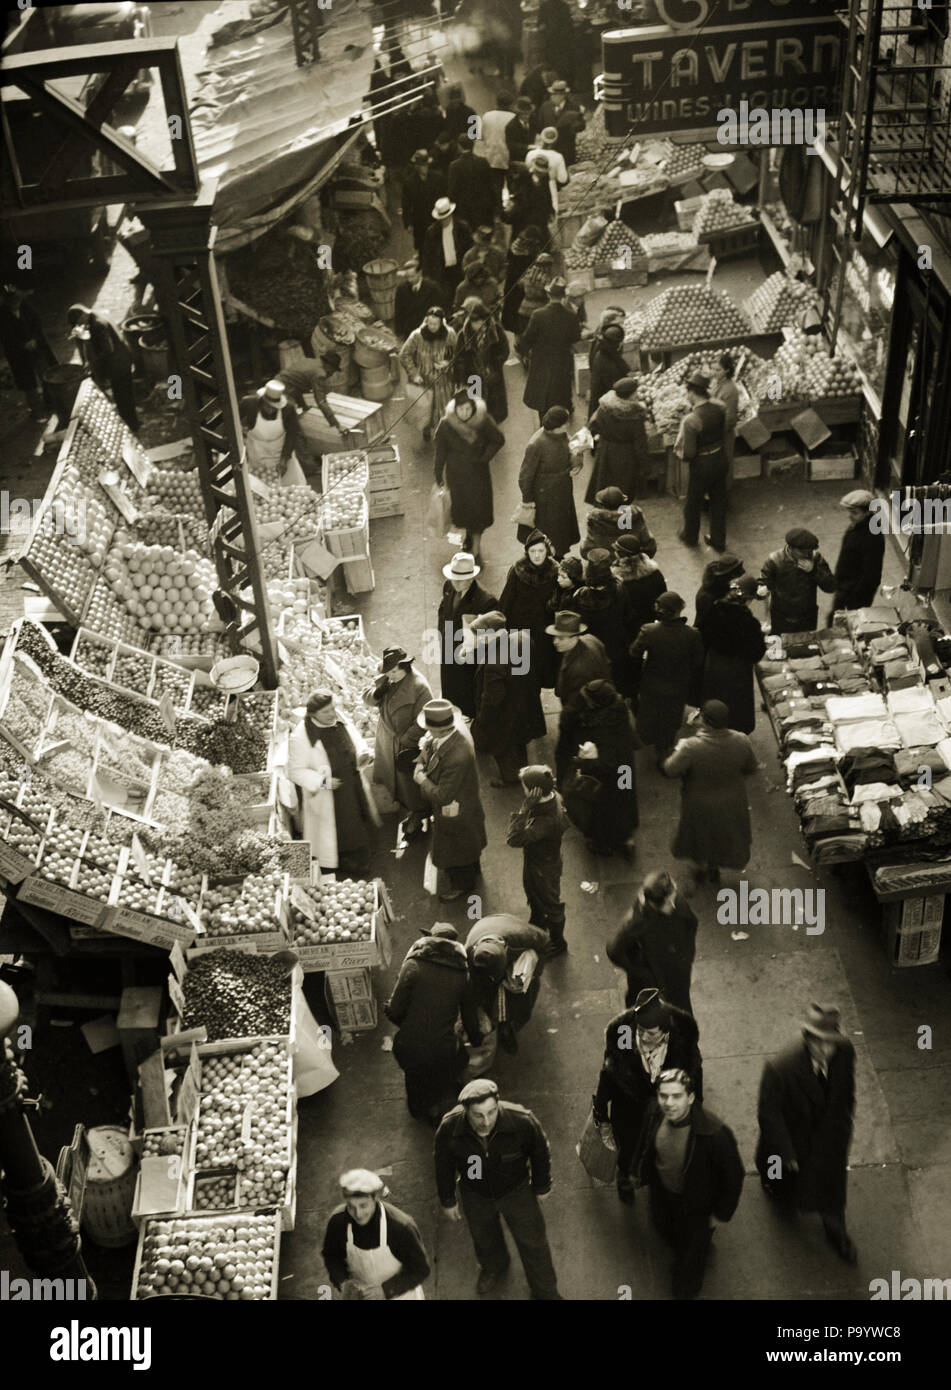 1930s 1937 FRUIT AND VEGETABLE MARKET STANDS ON SIDEWALKS OF WEST SIDE 9TH AVENUE IN HELLS KITCHEN NEW YORK CITY USA - q43698 CPC001 HARS CUSTOMER SERVICE MARKETS NYC SIDEWALKS NEW YORK CITIES NOURISHMENT PRODUCE NEW YORK CITY STANDS 9TH AVENUE FRUITS GREEN GROCERS HELLS KITCHEN 1937 AERIAL VIEW BLACK AND WHITE DISPLAYS OLD FASHIONED WEST SIDE - Stock Image